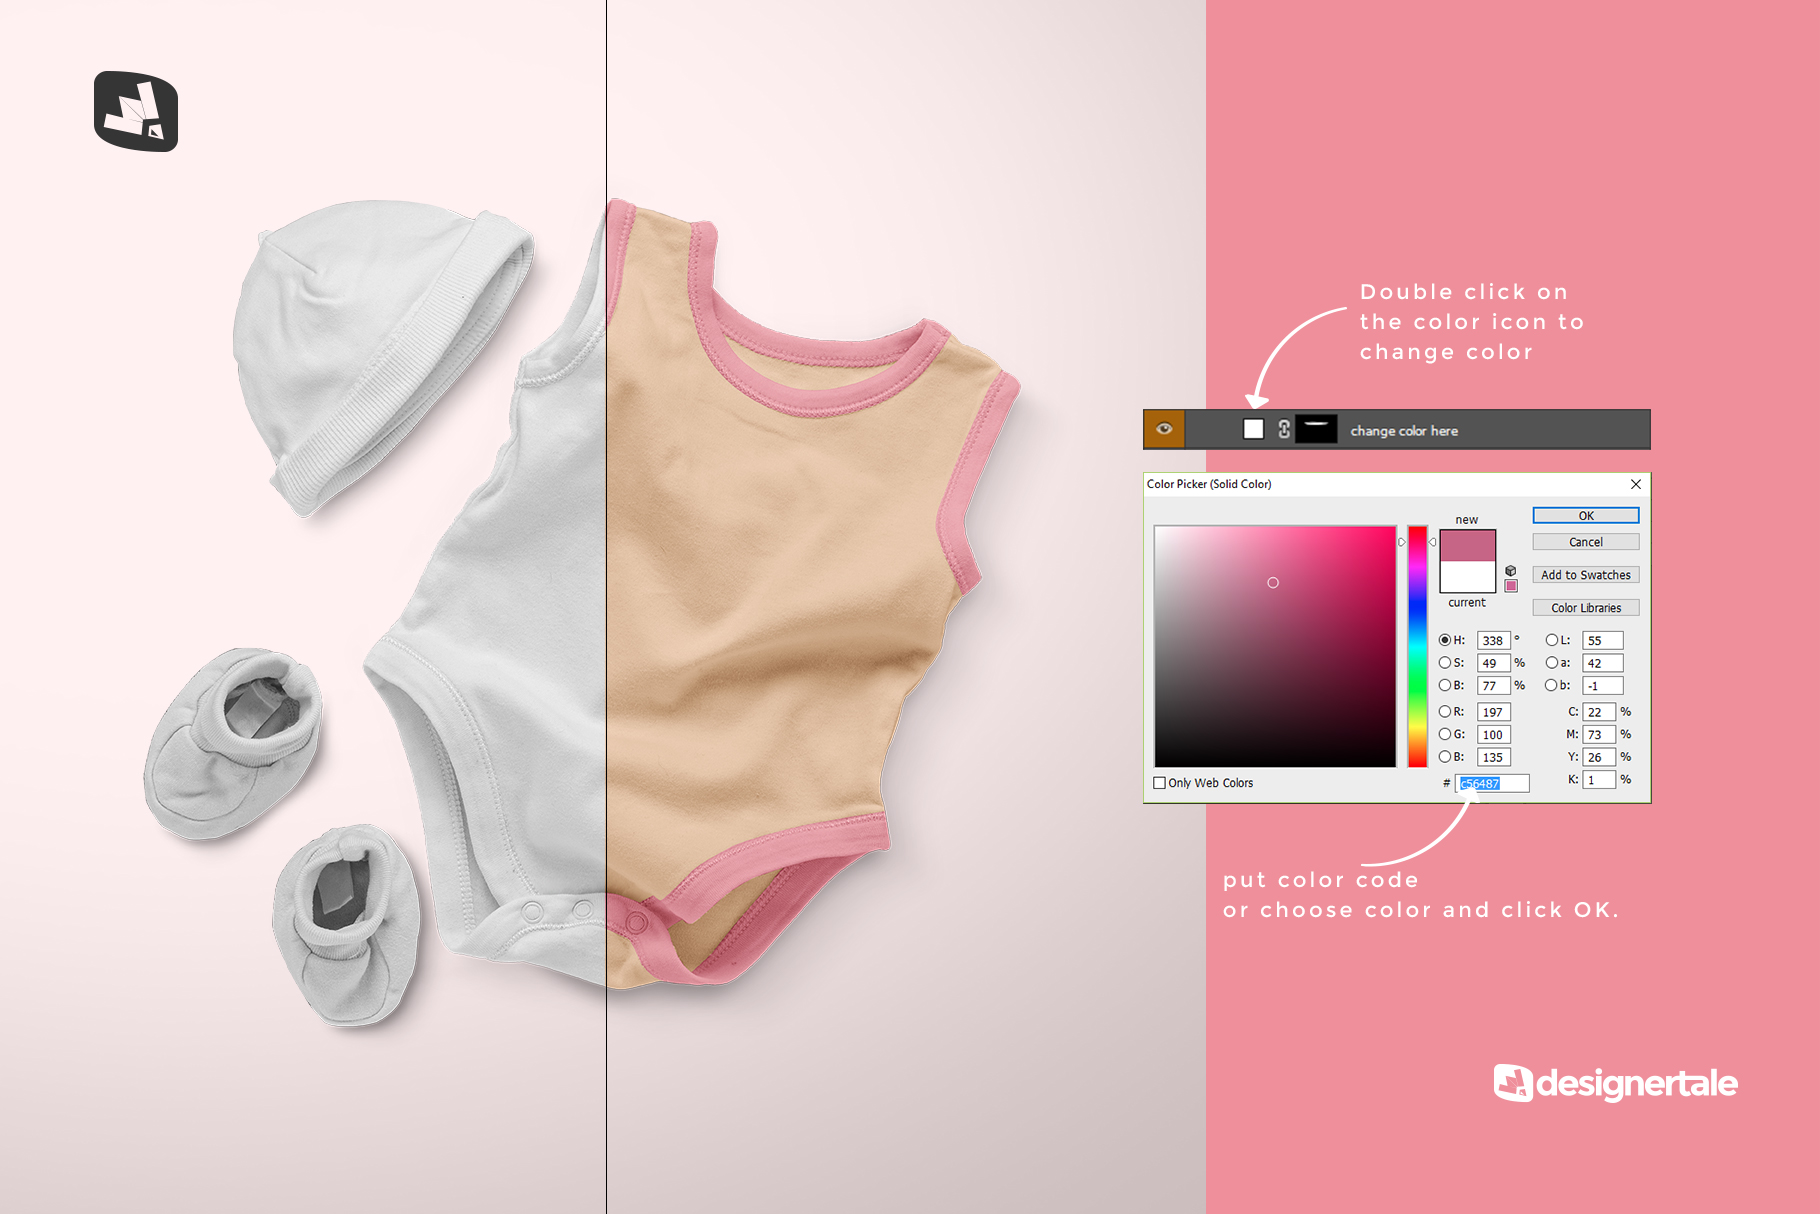 how to change color of the sleeveless baby romper with cap mockup